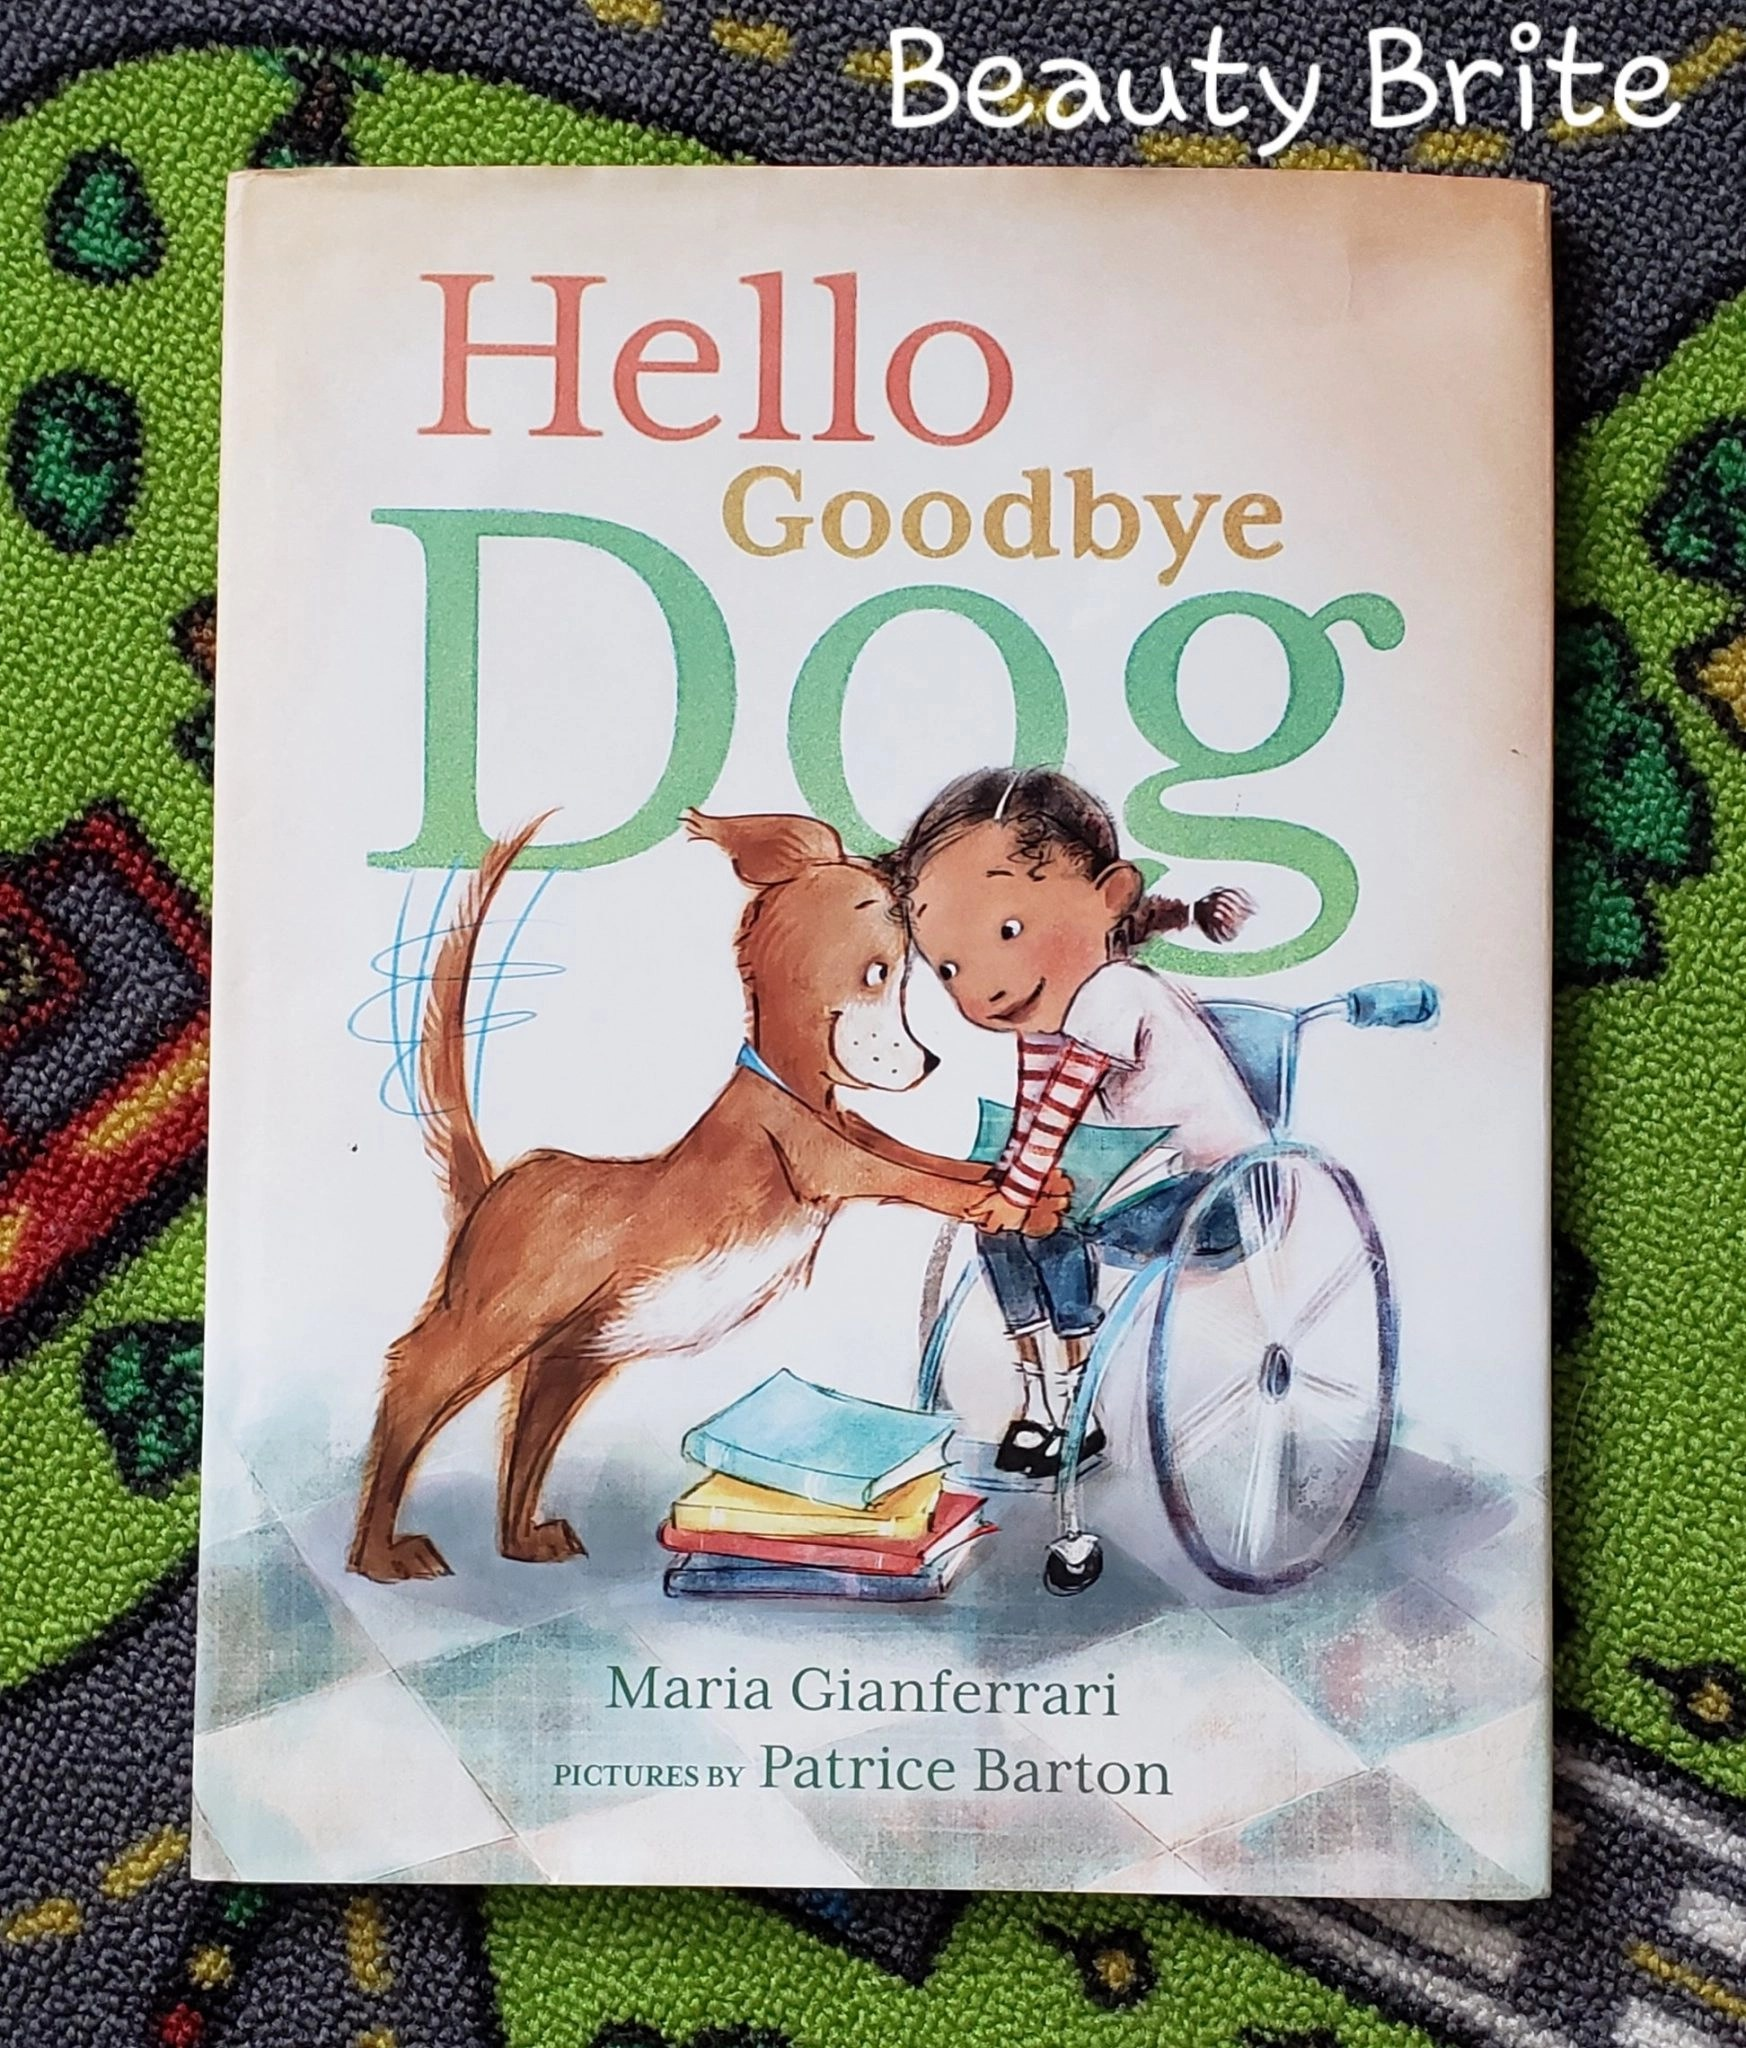 Jambo Book Club Hello Goodbye Dog